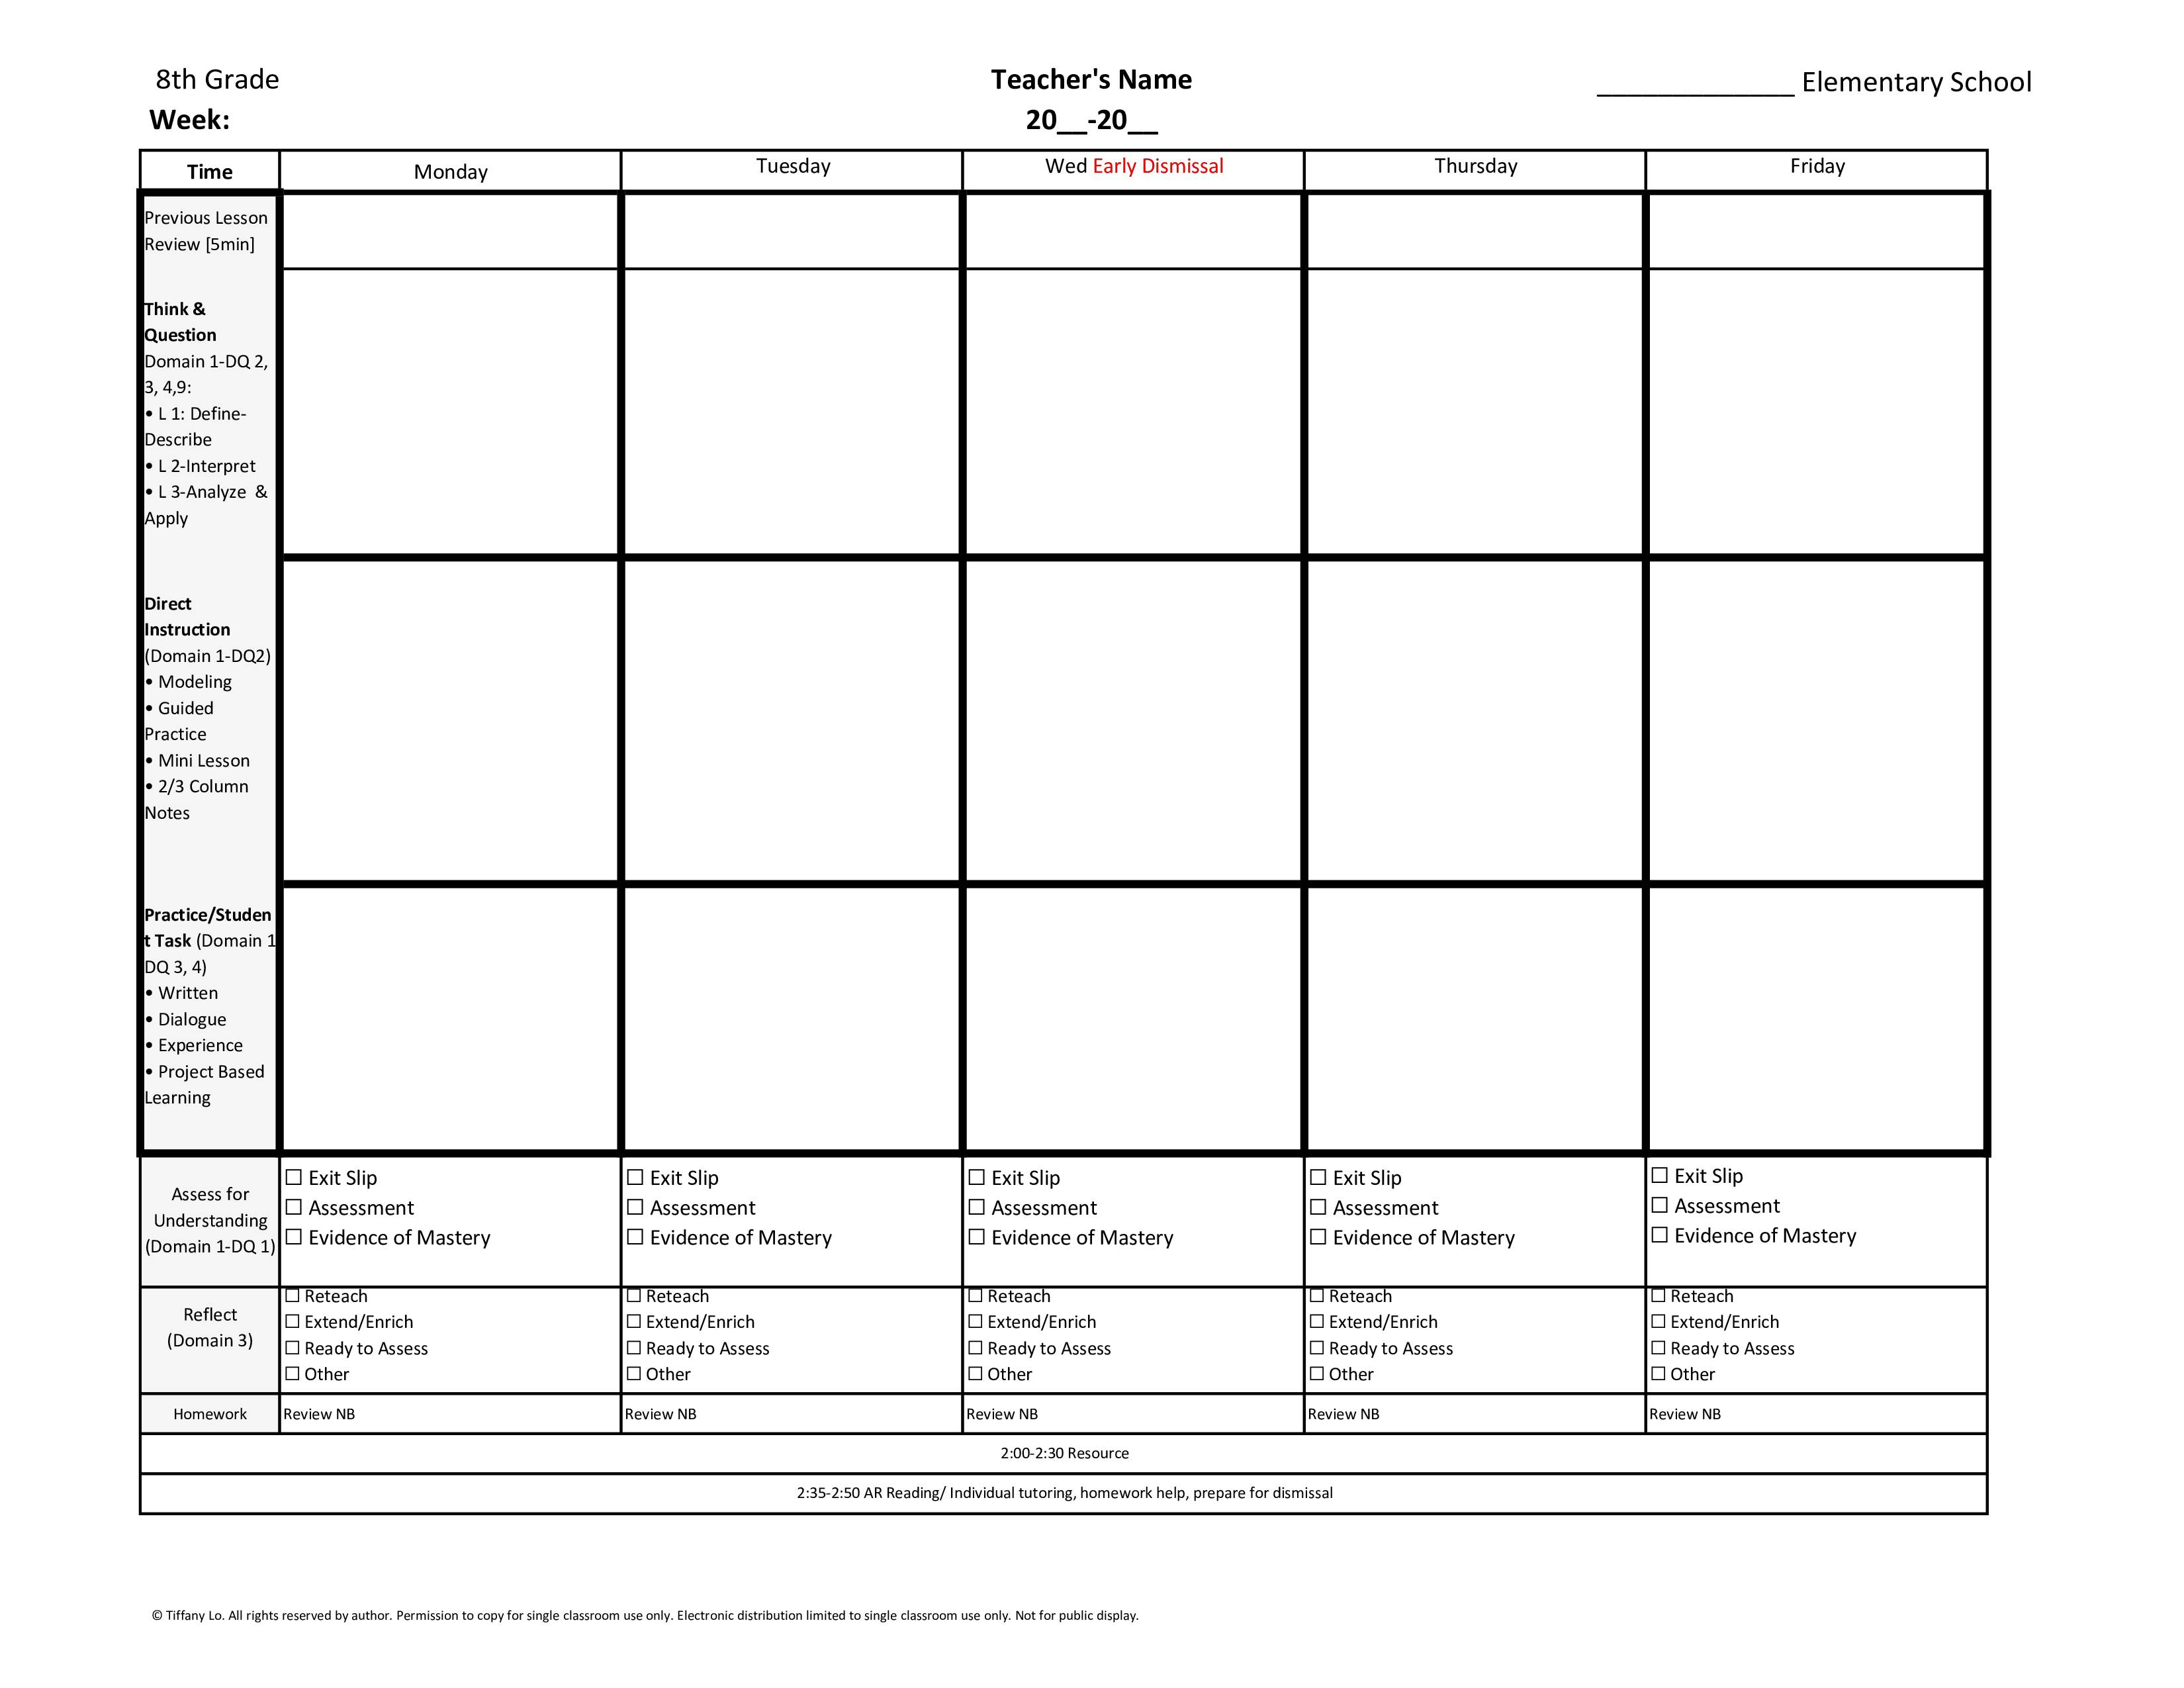 Th Eighth Grade Common Core Weekly Lesson Plan Template W Drop - Common core lesson plan templates